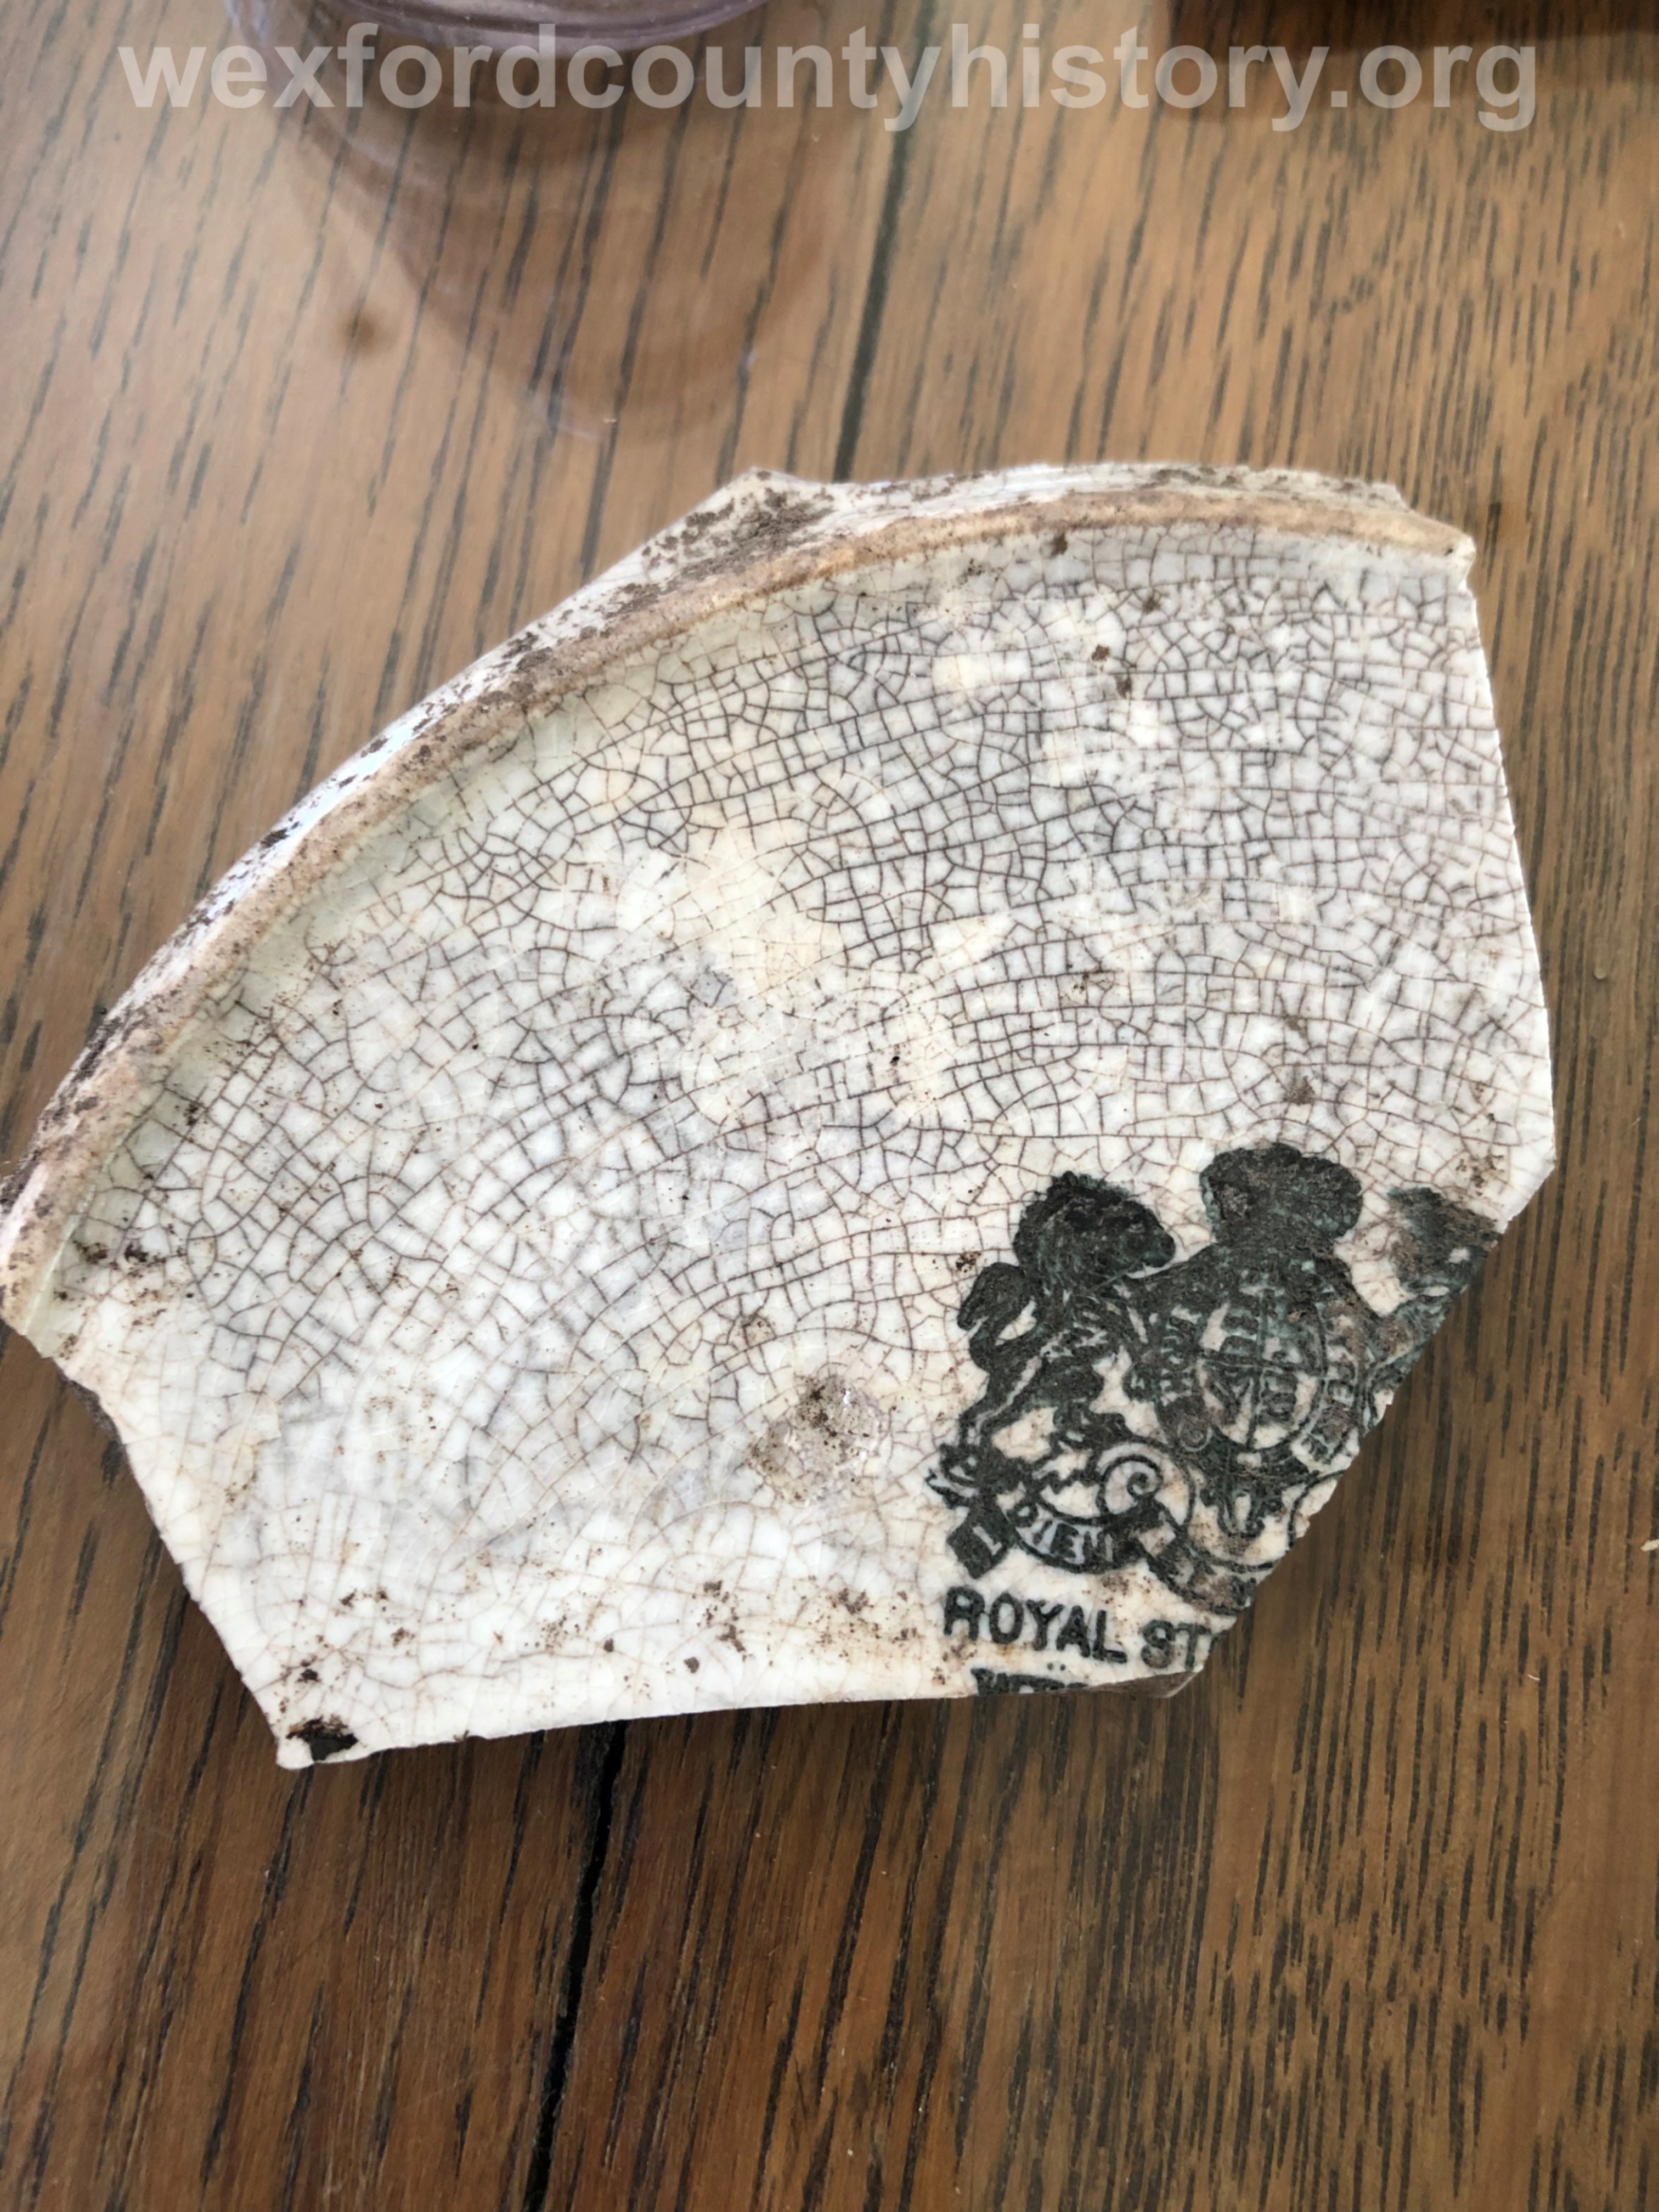 Wexford-County-Objects-Plottsville-Remains-Possibly-11